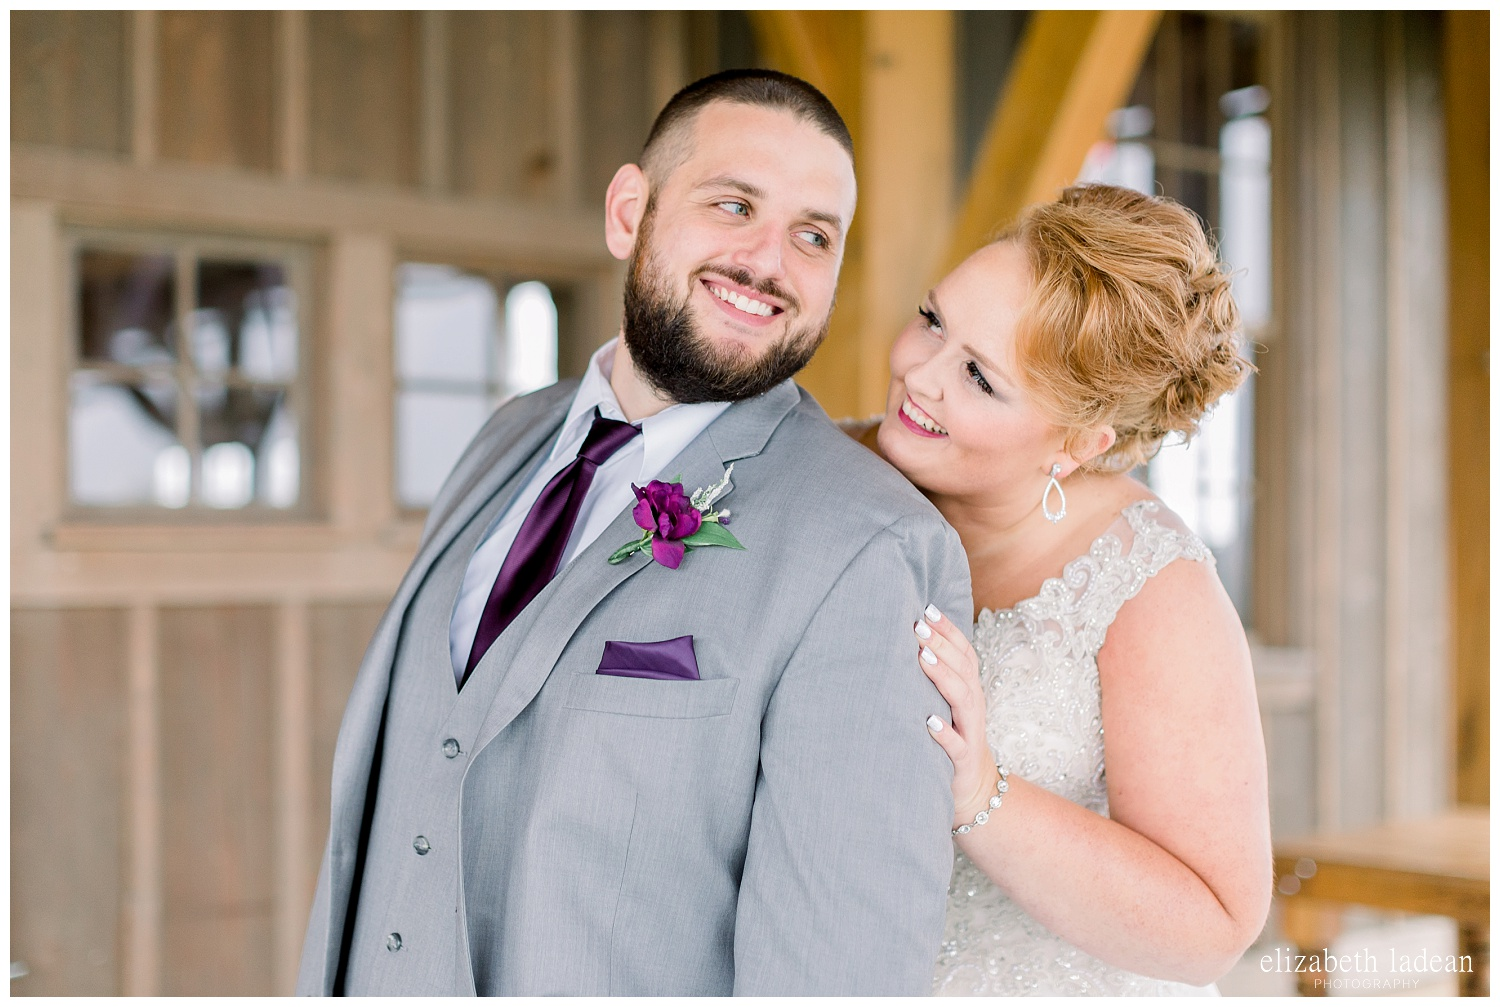 Weston-Timber-Barn-Wedding-Photography-L+A-elizabeth-ladean0photo_1880.jpg